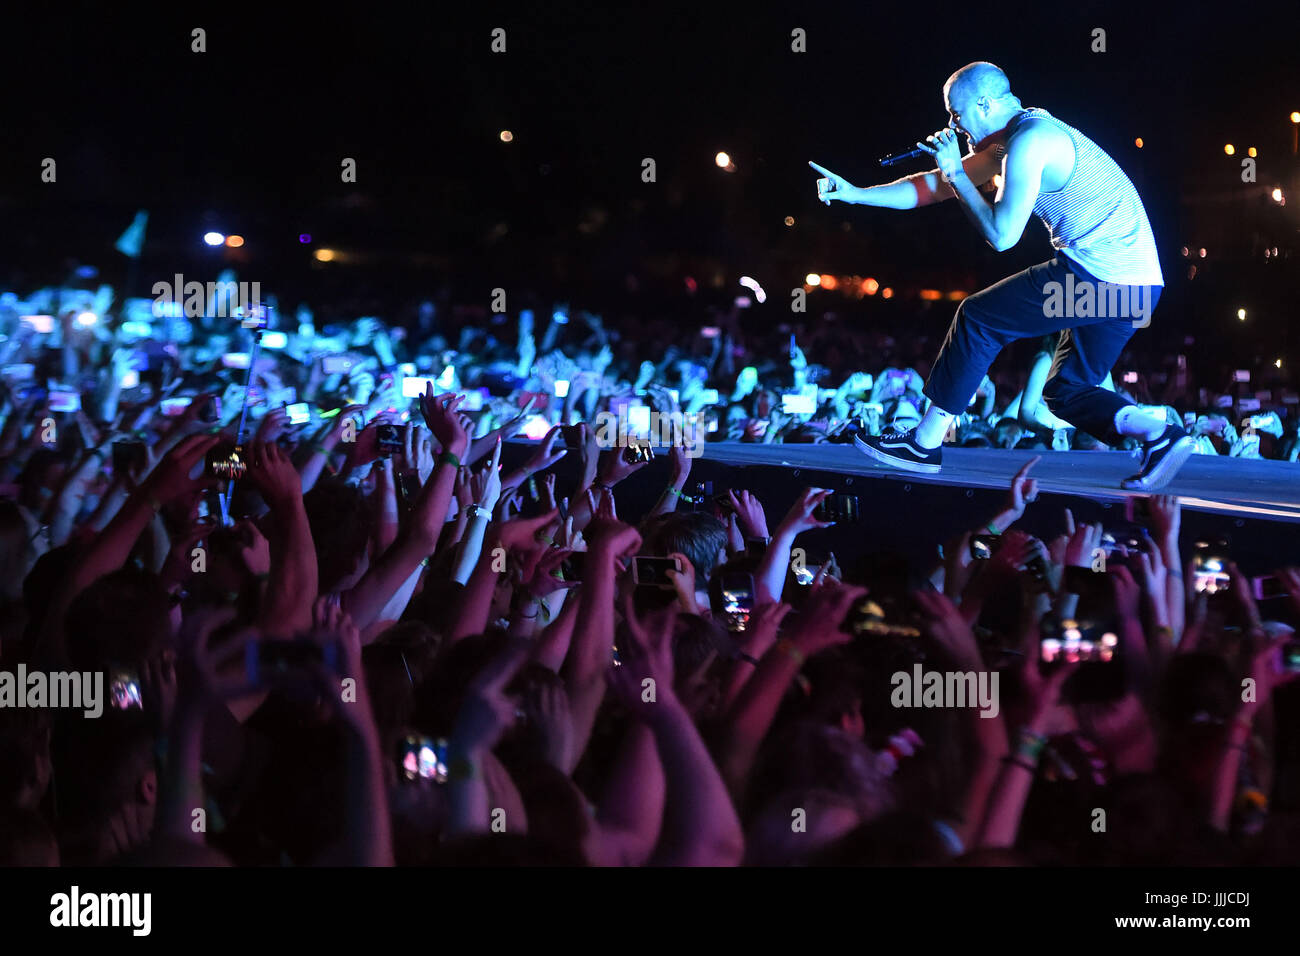 Ostrava, Czech Republic. 19th July, 2017. Singer Dan Reynolds of the US music band Imagine Dragons performs during - Stock Image